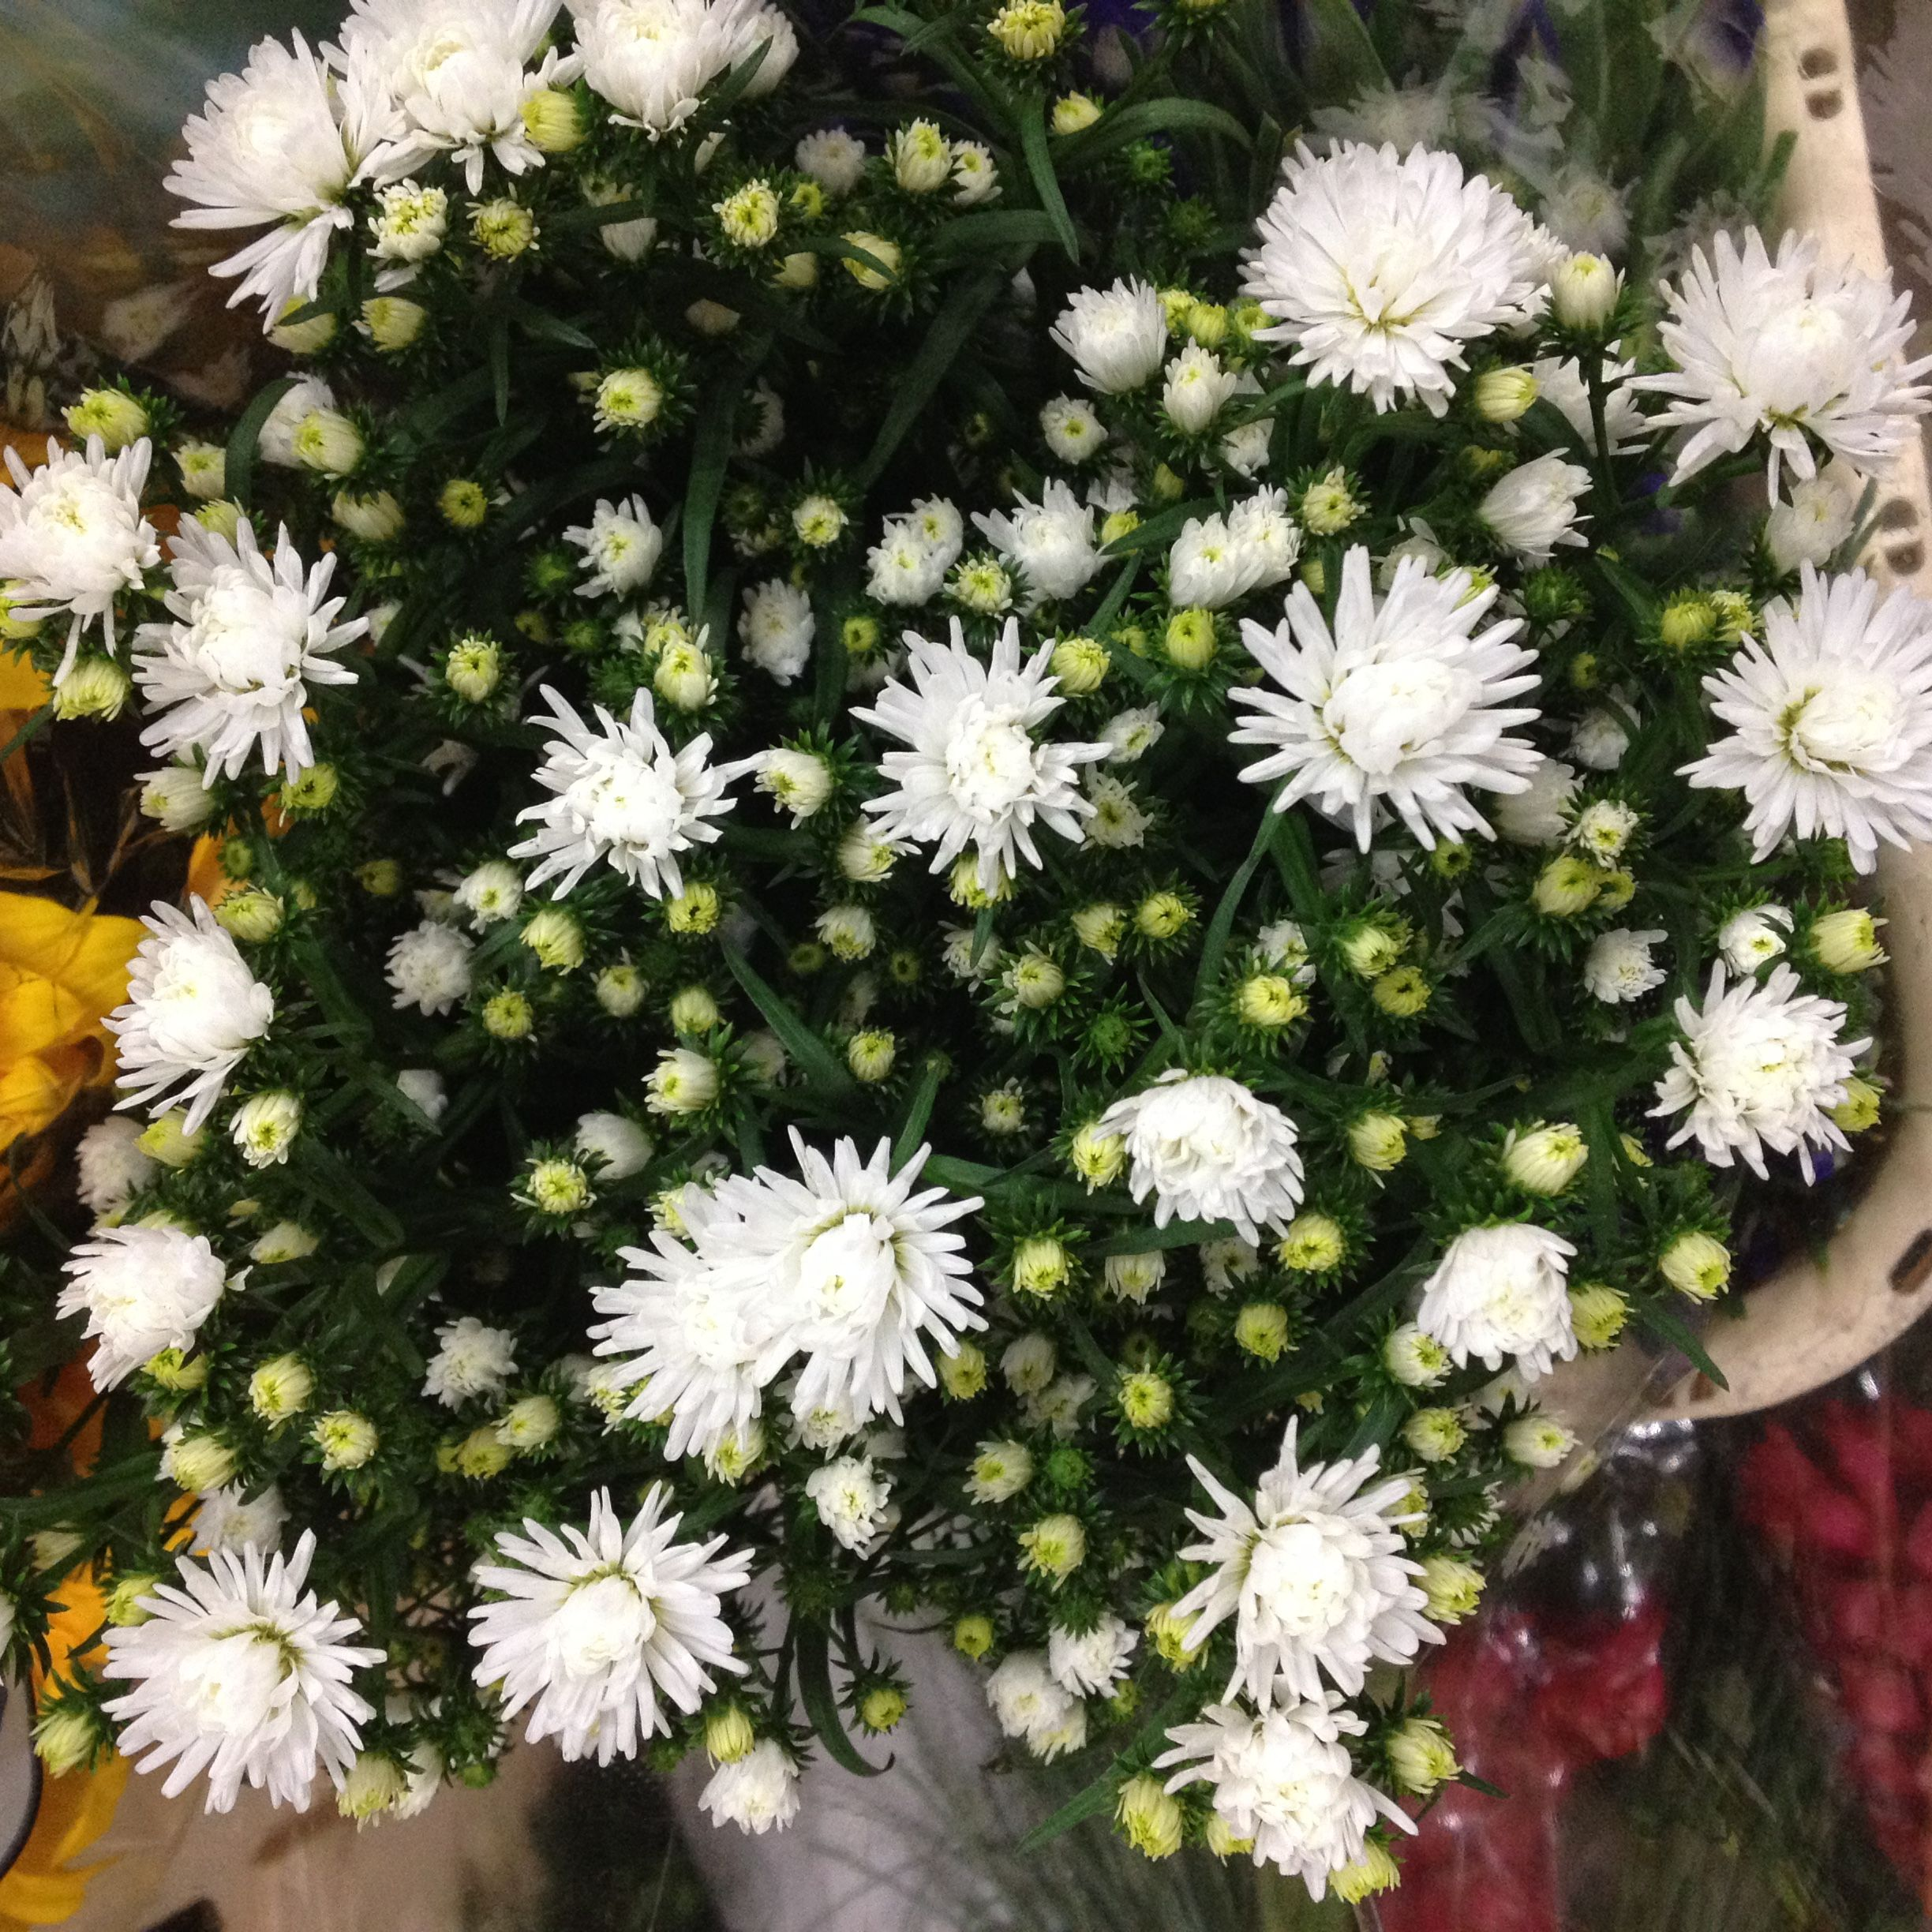 White Double September Flower Called Pretty Wendy Sold In Bunches